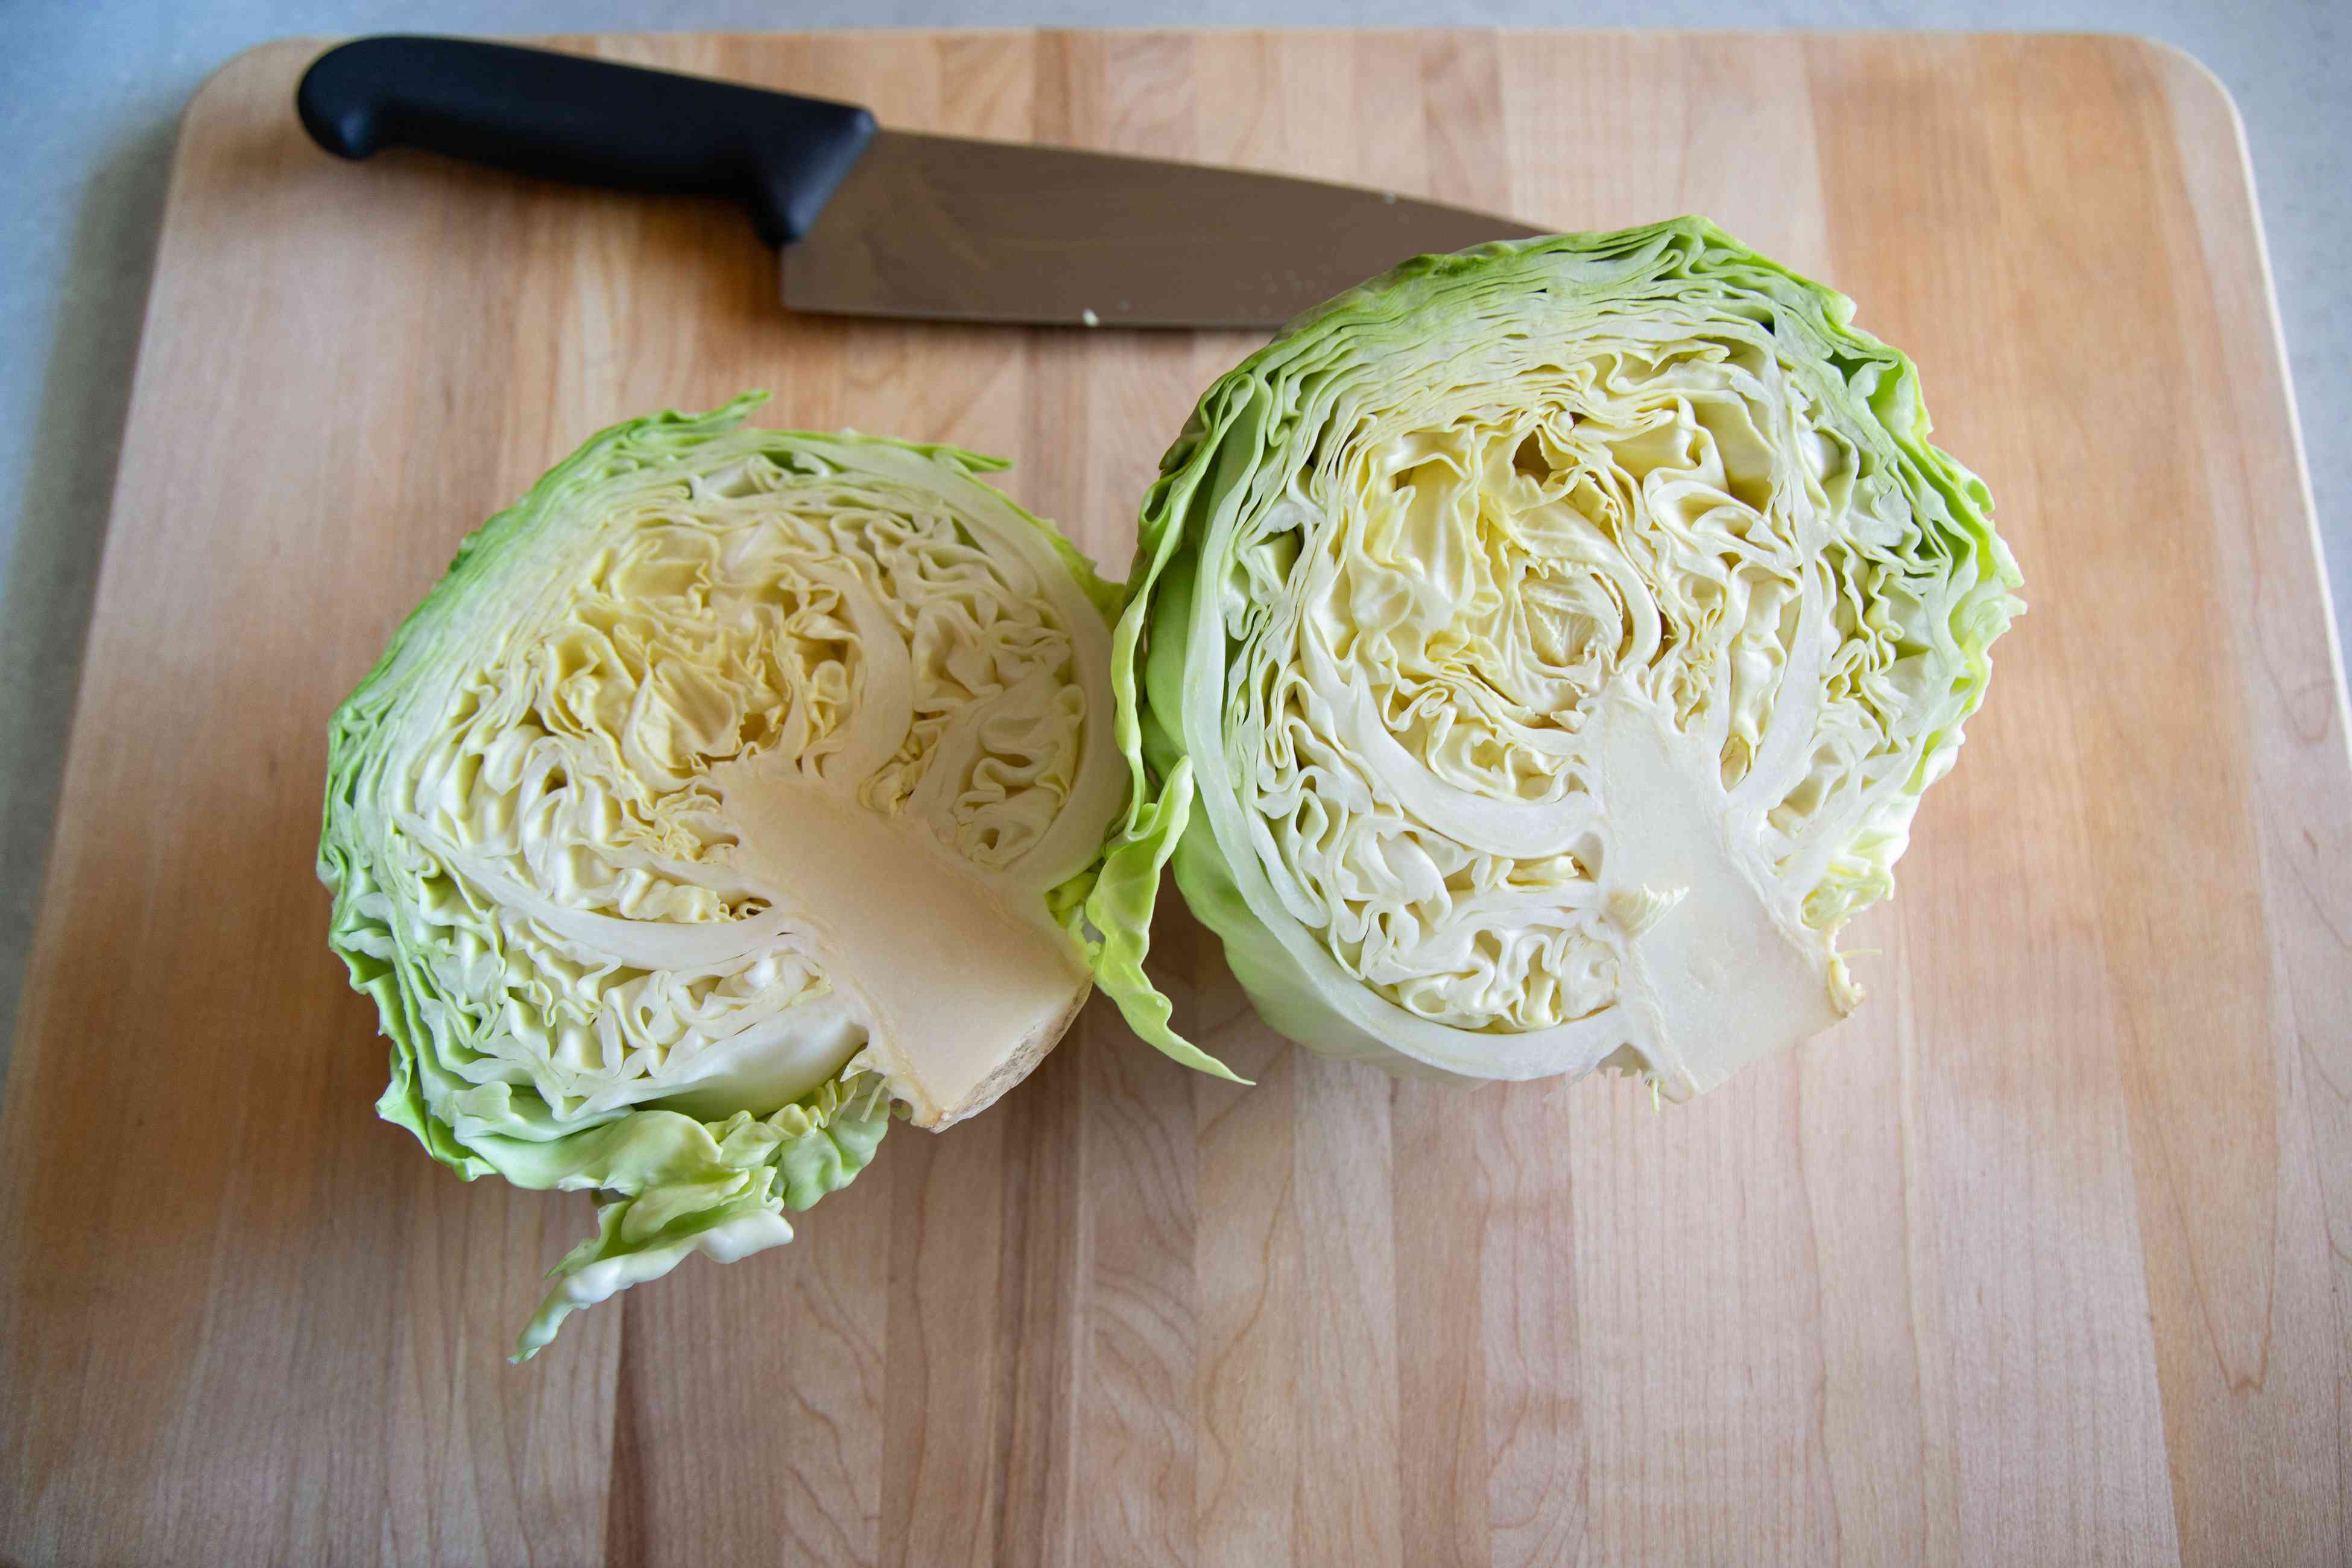 Chopping a head of cabbage in half on a cutting board.